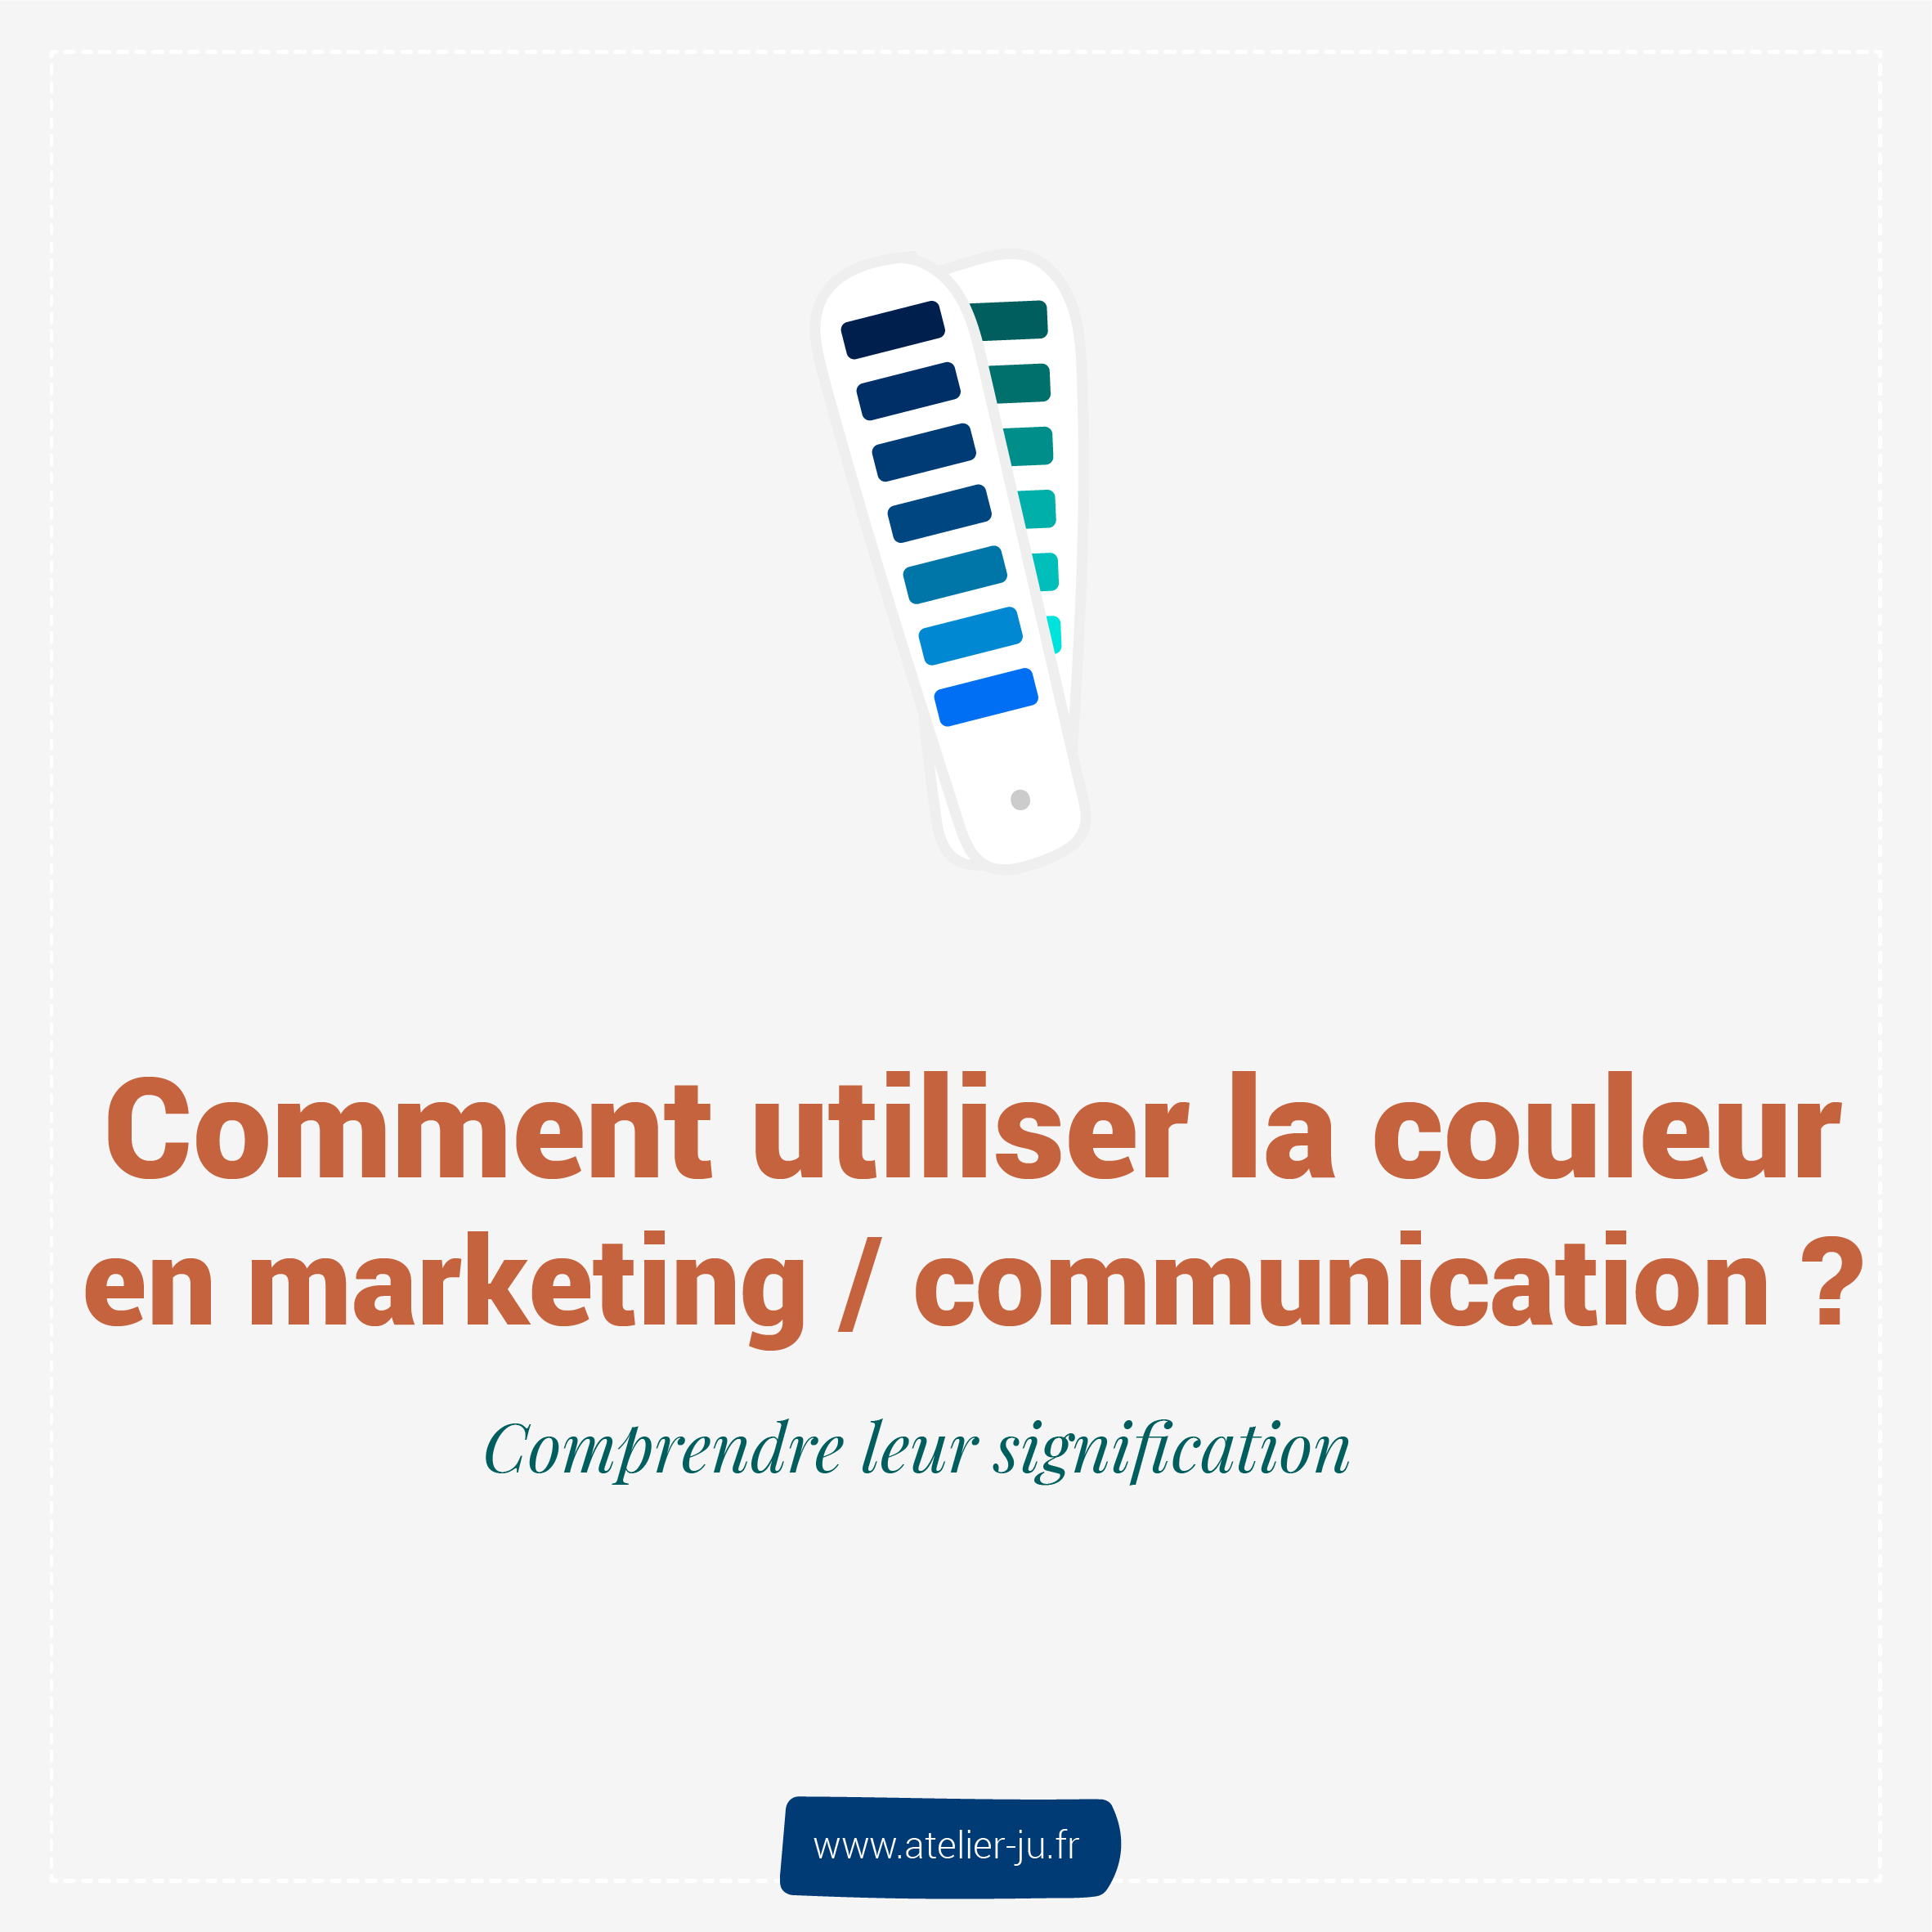 comment utiliser la couleur en marketing et communicaiton ?